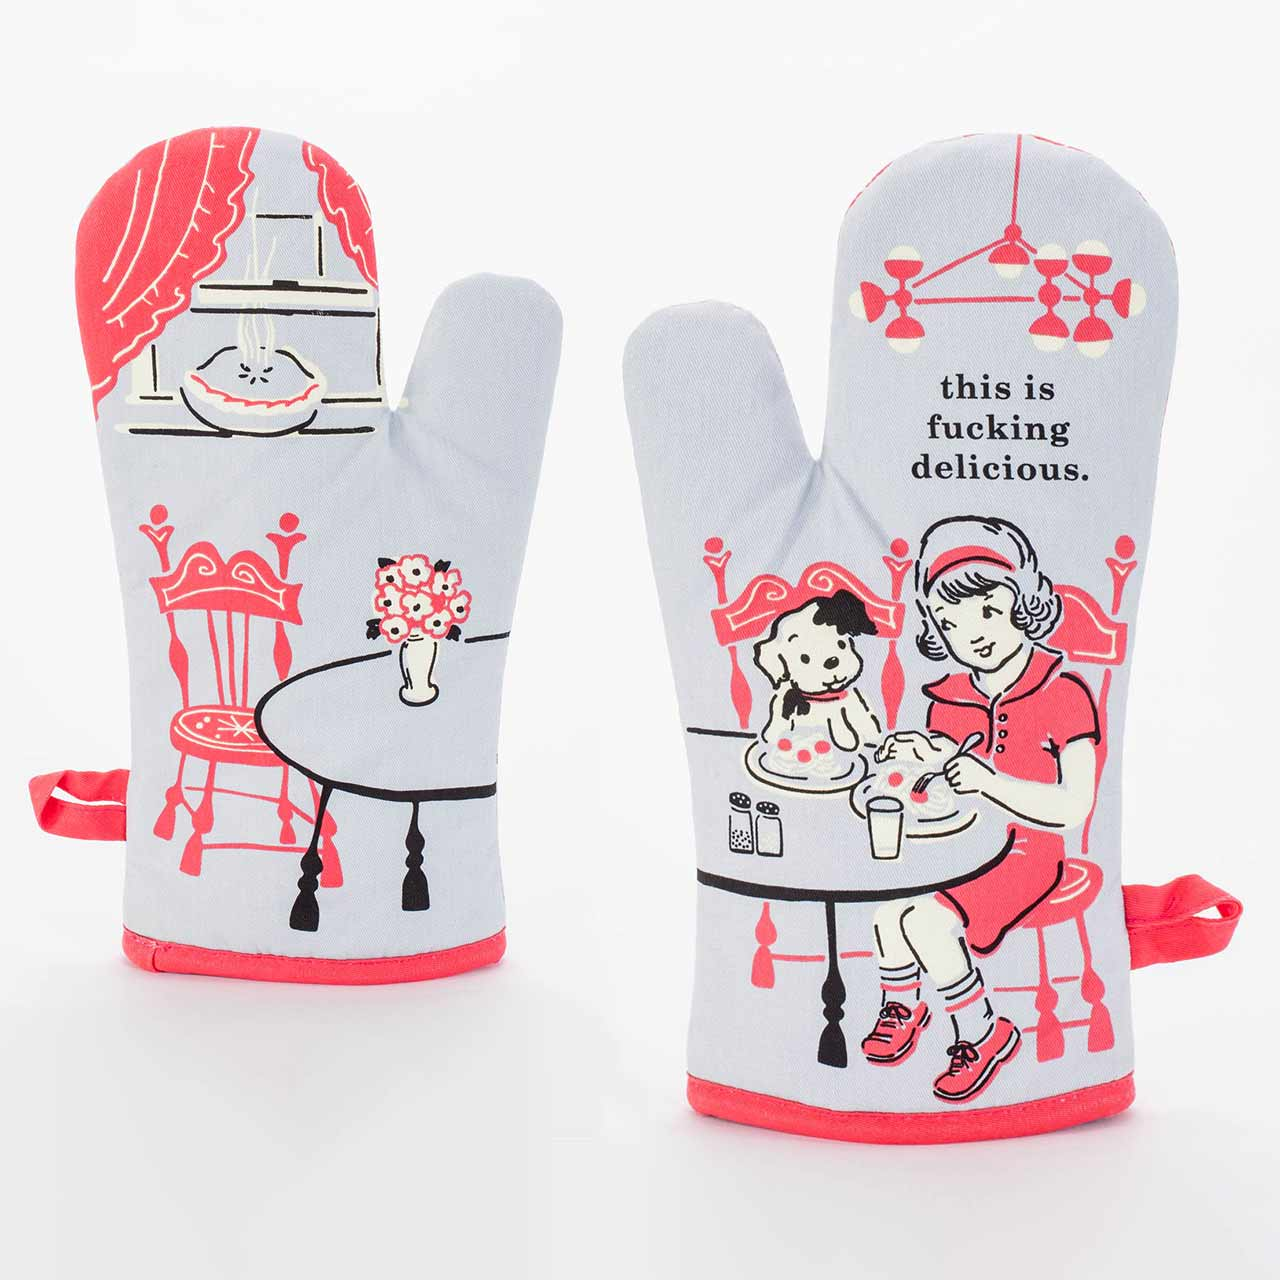 This Is Fucking Delicious - Oven Mitt by Blue Q  | The Design Gift Shop